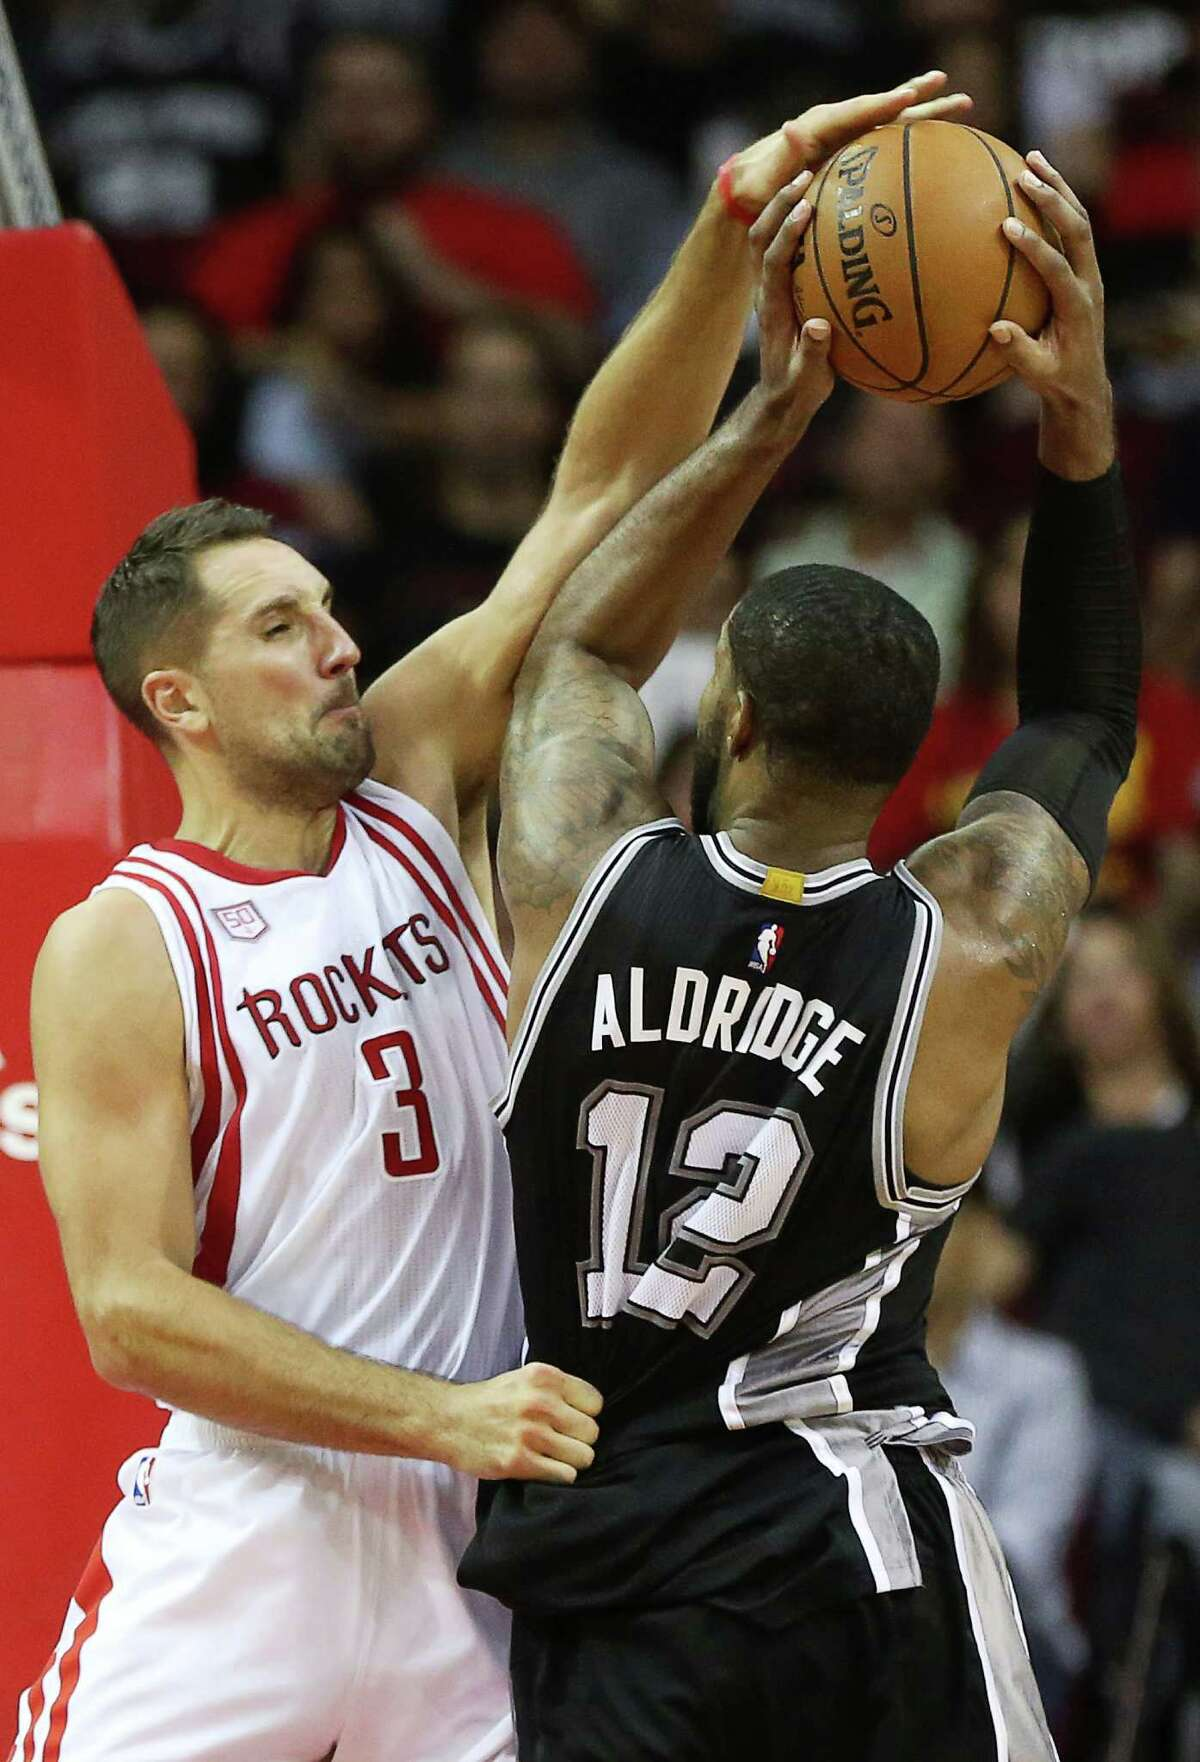 Houston Rockets forward Ryan Anderson (3) fouls on San Antonio Spurs forward LaMarcus Aldridge (12) during the second half of the game Saturday, Nov. 12, 2016, in Houston. The Rockets lost to the Spurs 106-100.